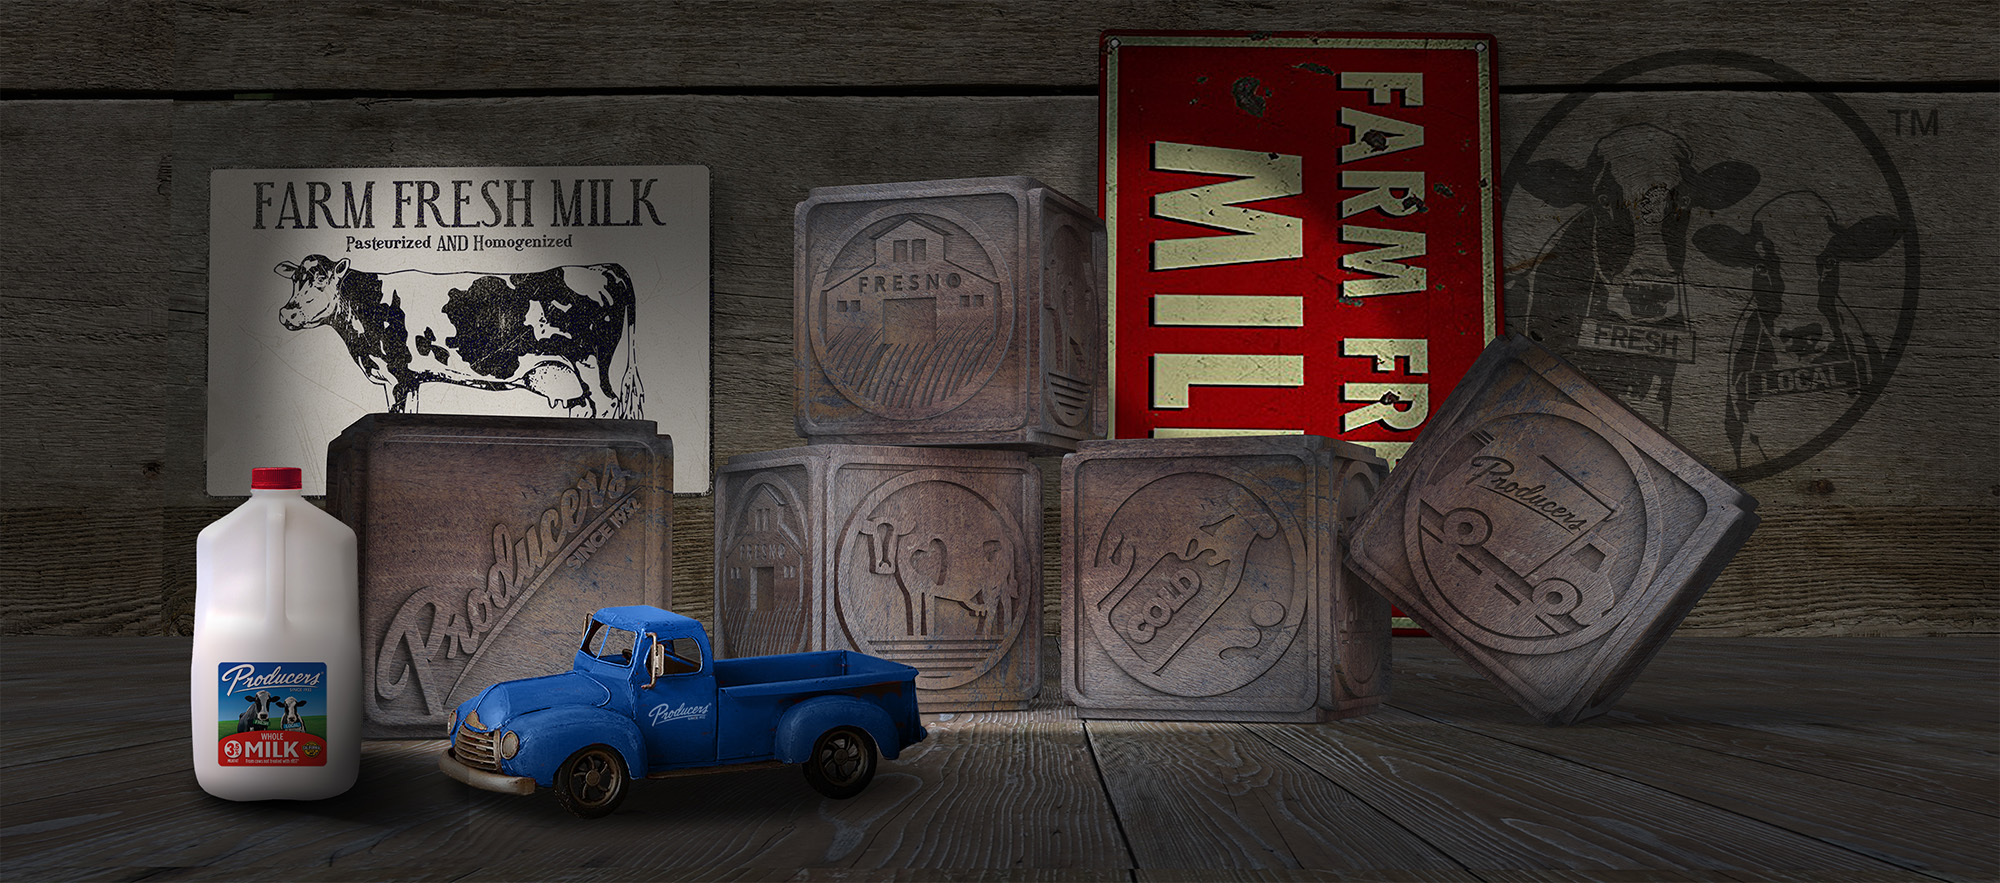 Building blocks with Producers logo on one, dairy cow on another, cold bottle of milk on another, Fresno Barn on another, and a vdelivery truck on the last one. A gallon of Producers white whole milk. Farm Fresh Signage. A blue vintage truck.